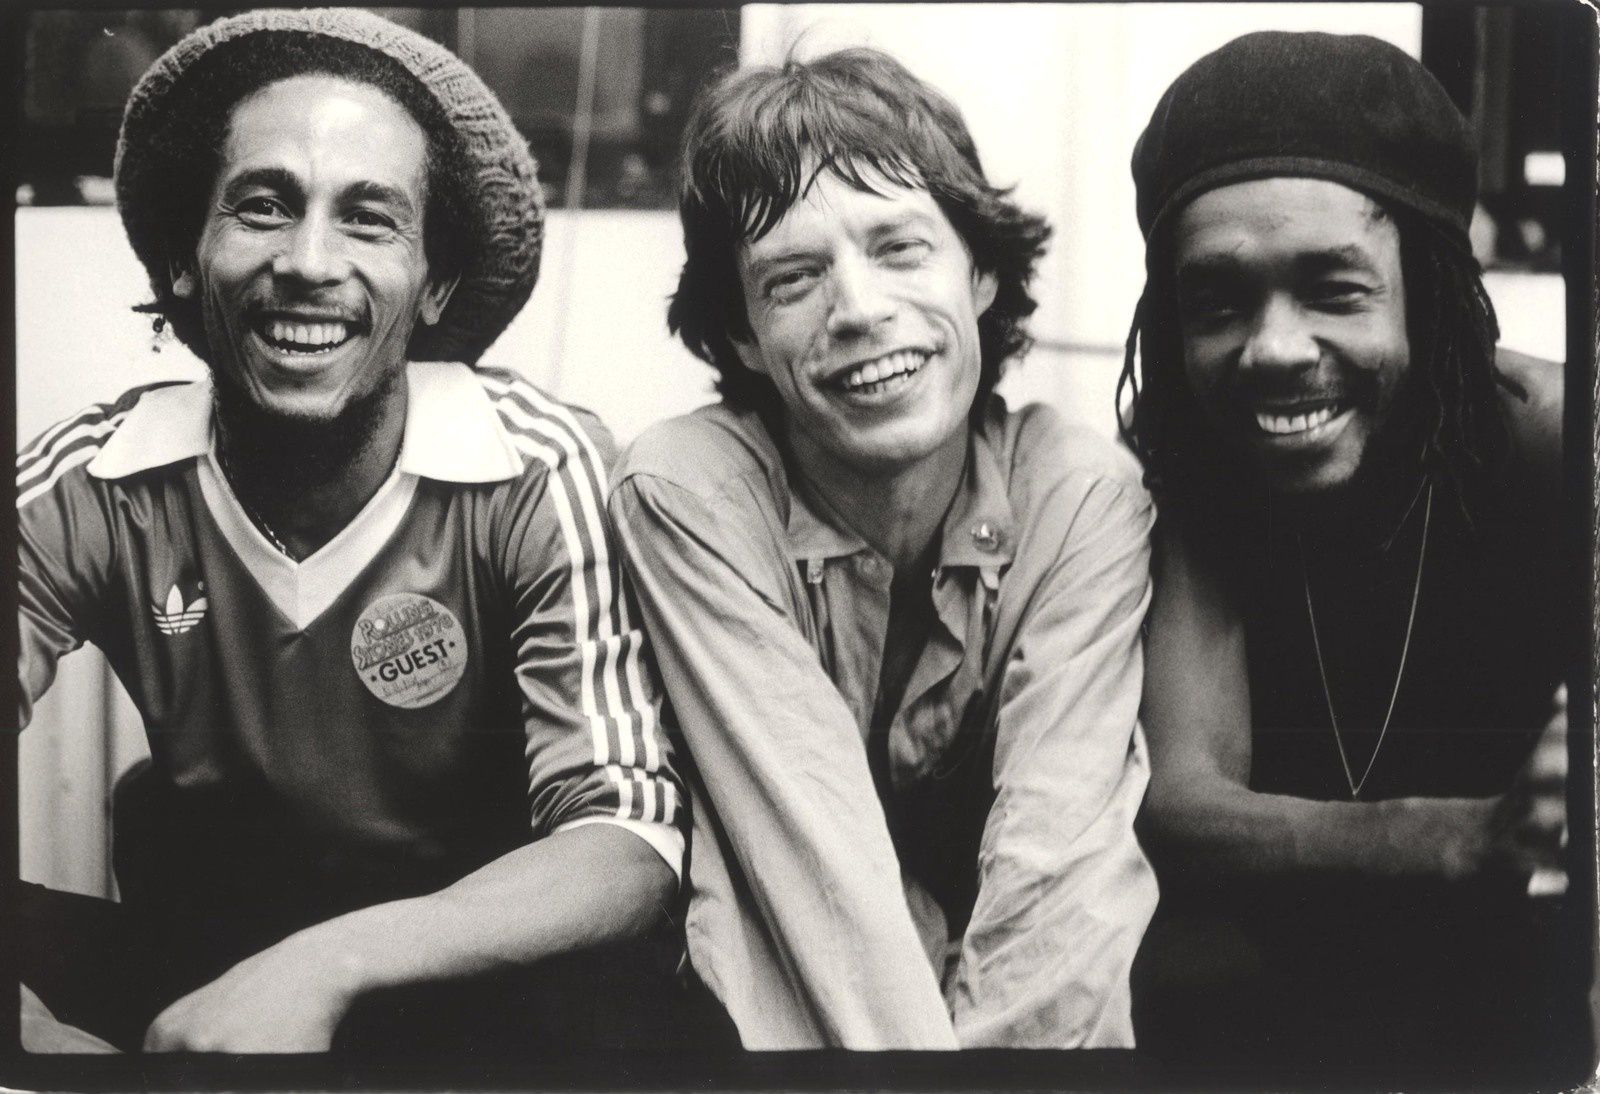 Bob Marley , Mick Jagger and Peter Tosh backstage at the Palladium Theatre - New York 1978